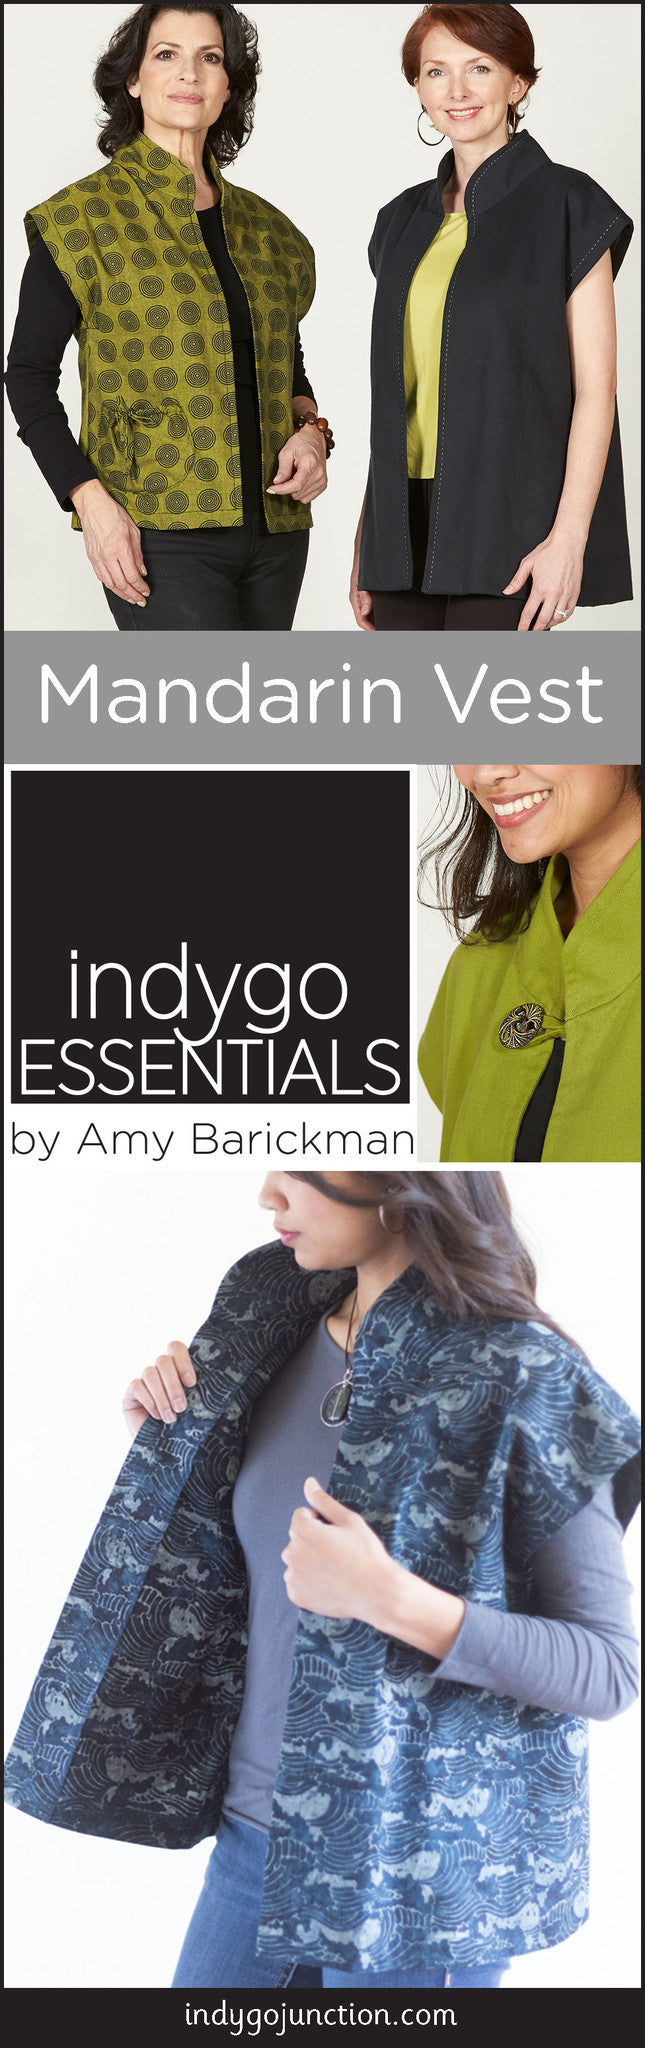 Indygo Essentials Mandarin Vest pattern is a beautiful addition to your closet!